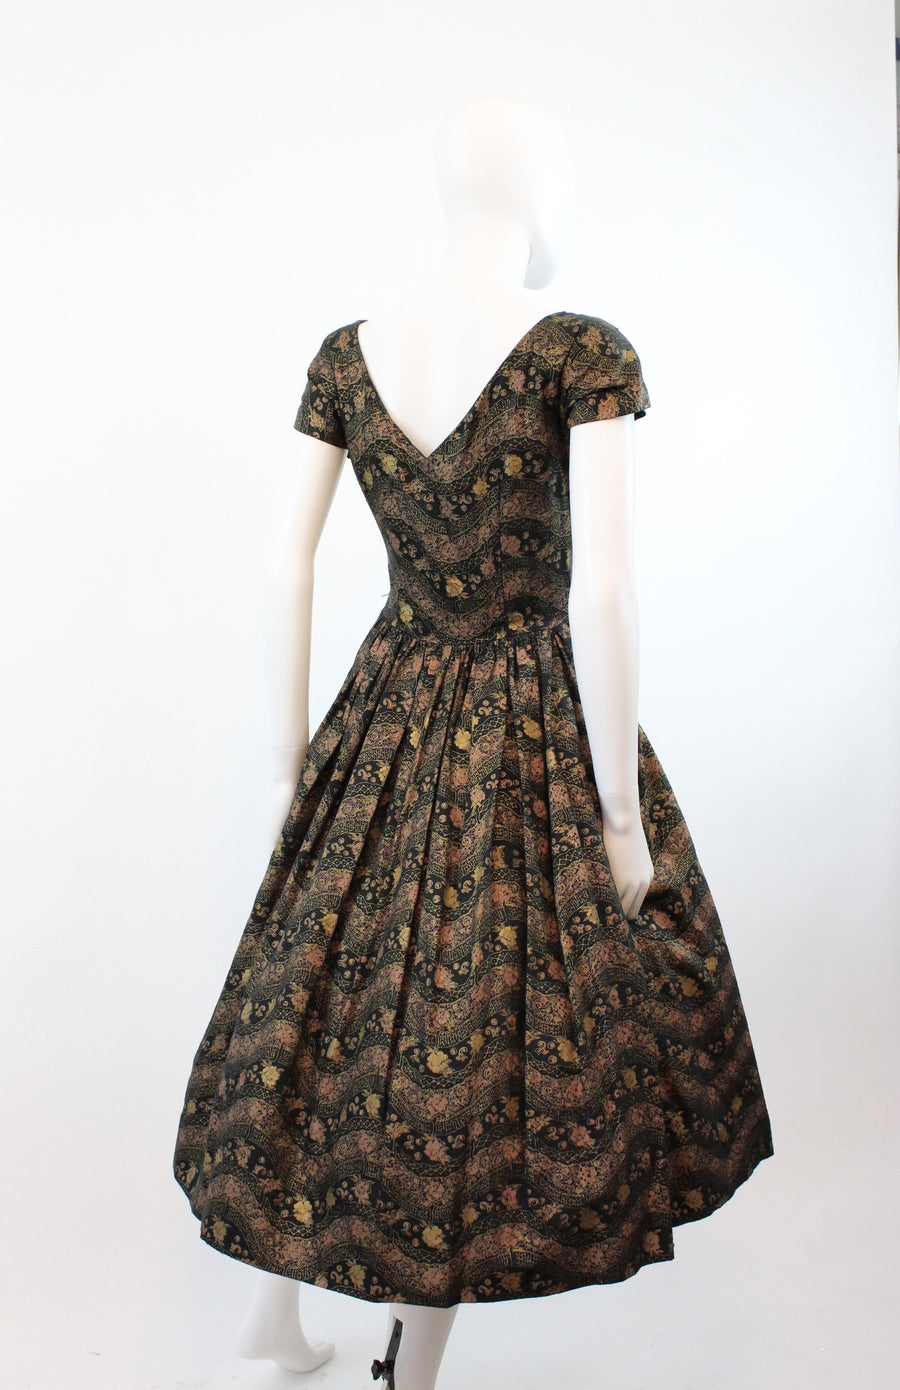 1950s Pat Hartley metallic floral dress | vintage full skirt asian dress | xs